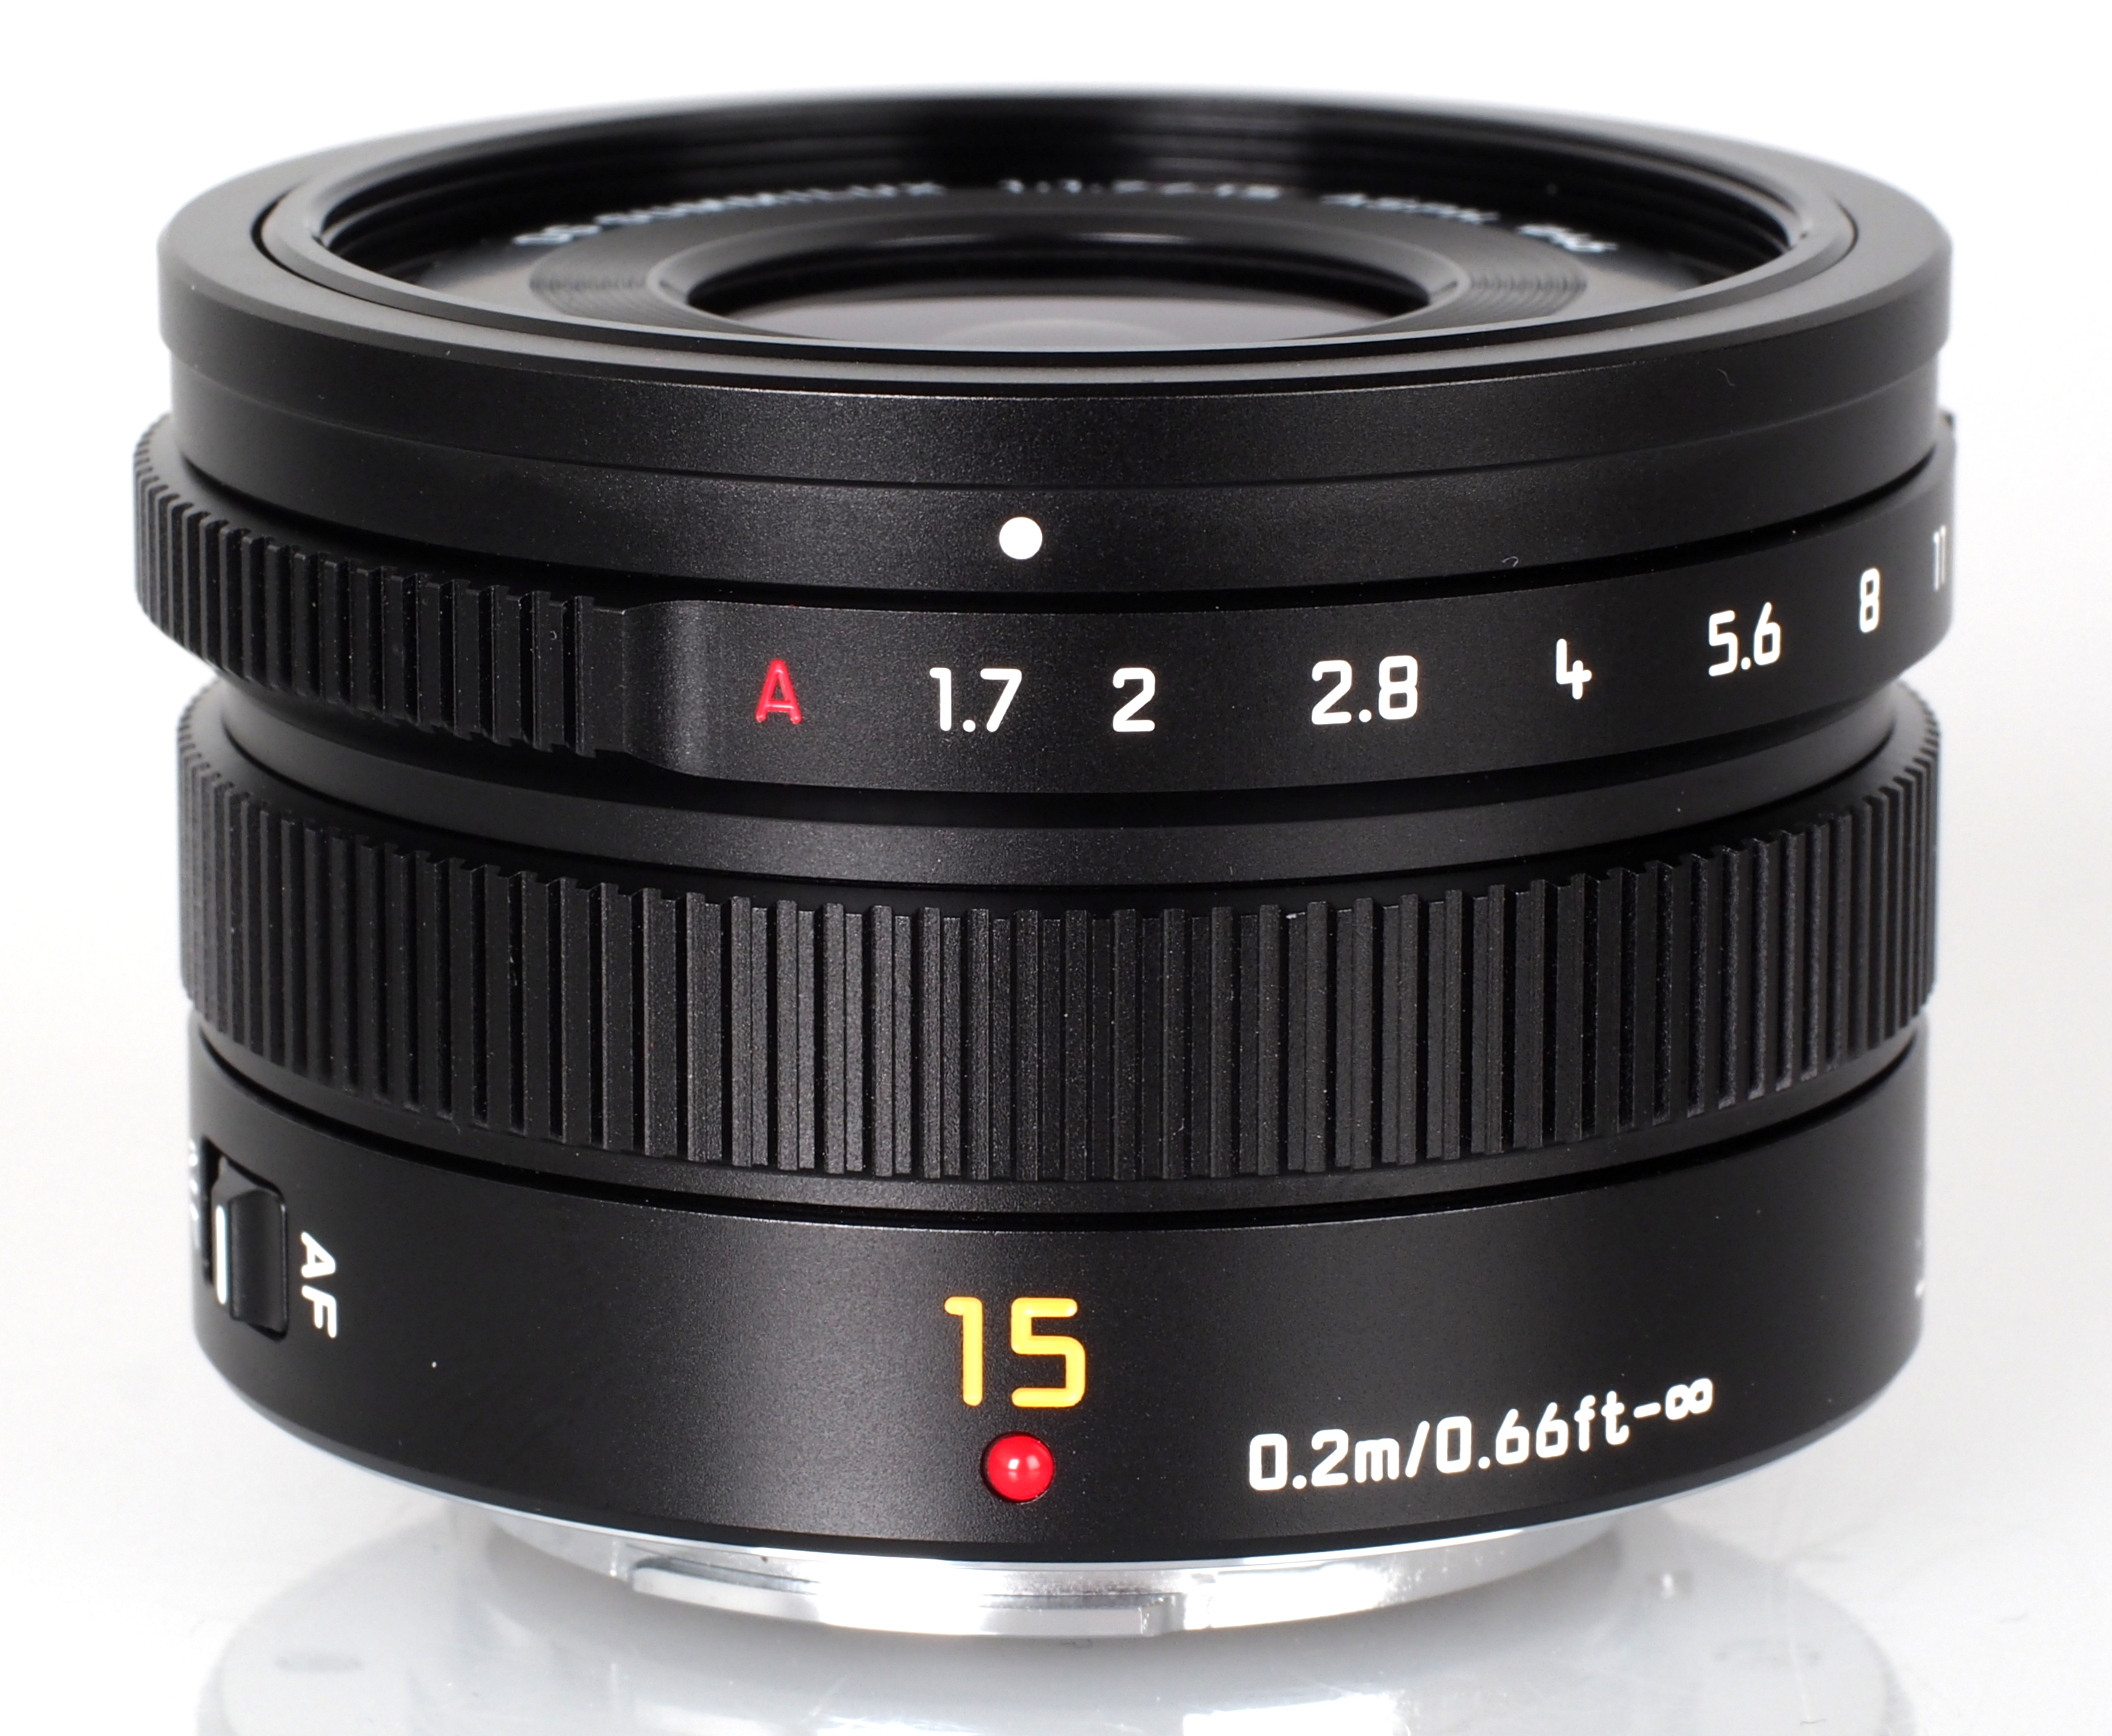 Image of Panasonic LUMIX G LEICA DG SUMMILUX 15mm f/1.7 ASPH Lens Black H-X015K